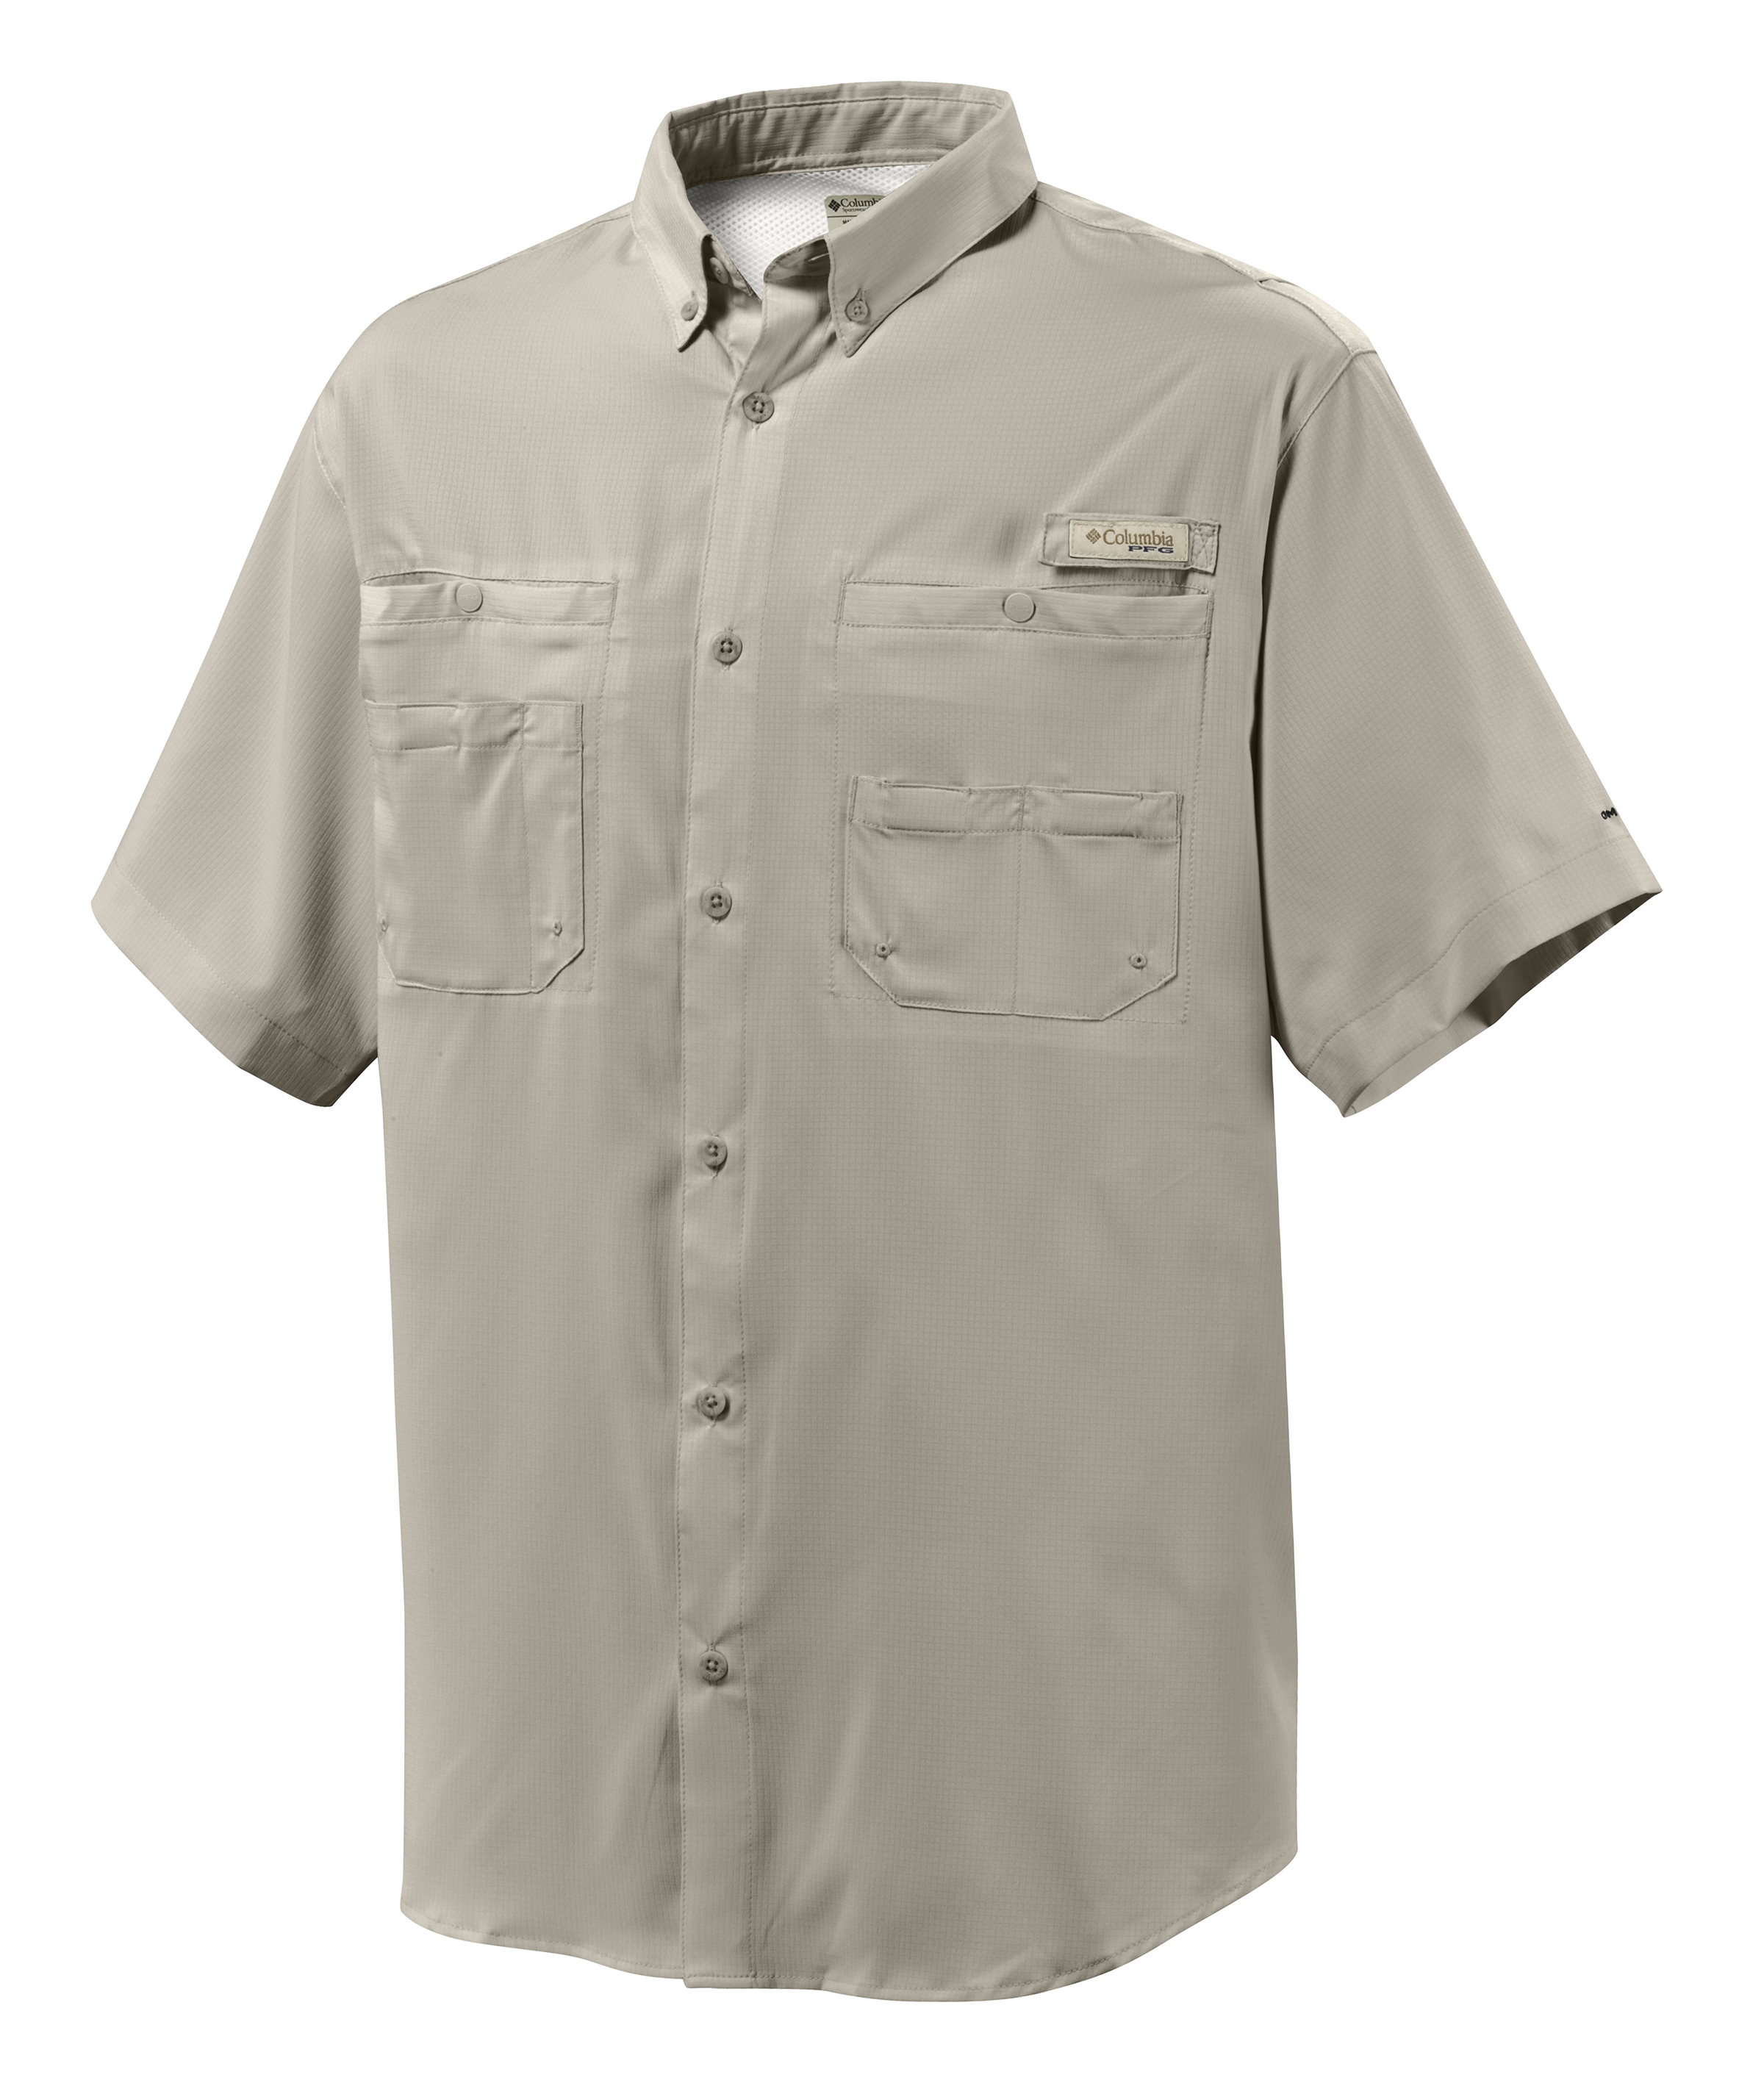 Columbia men 39 s tamiami ii short sleeve fishing shirt 7266 for Embroidered columbia fishing shirts